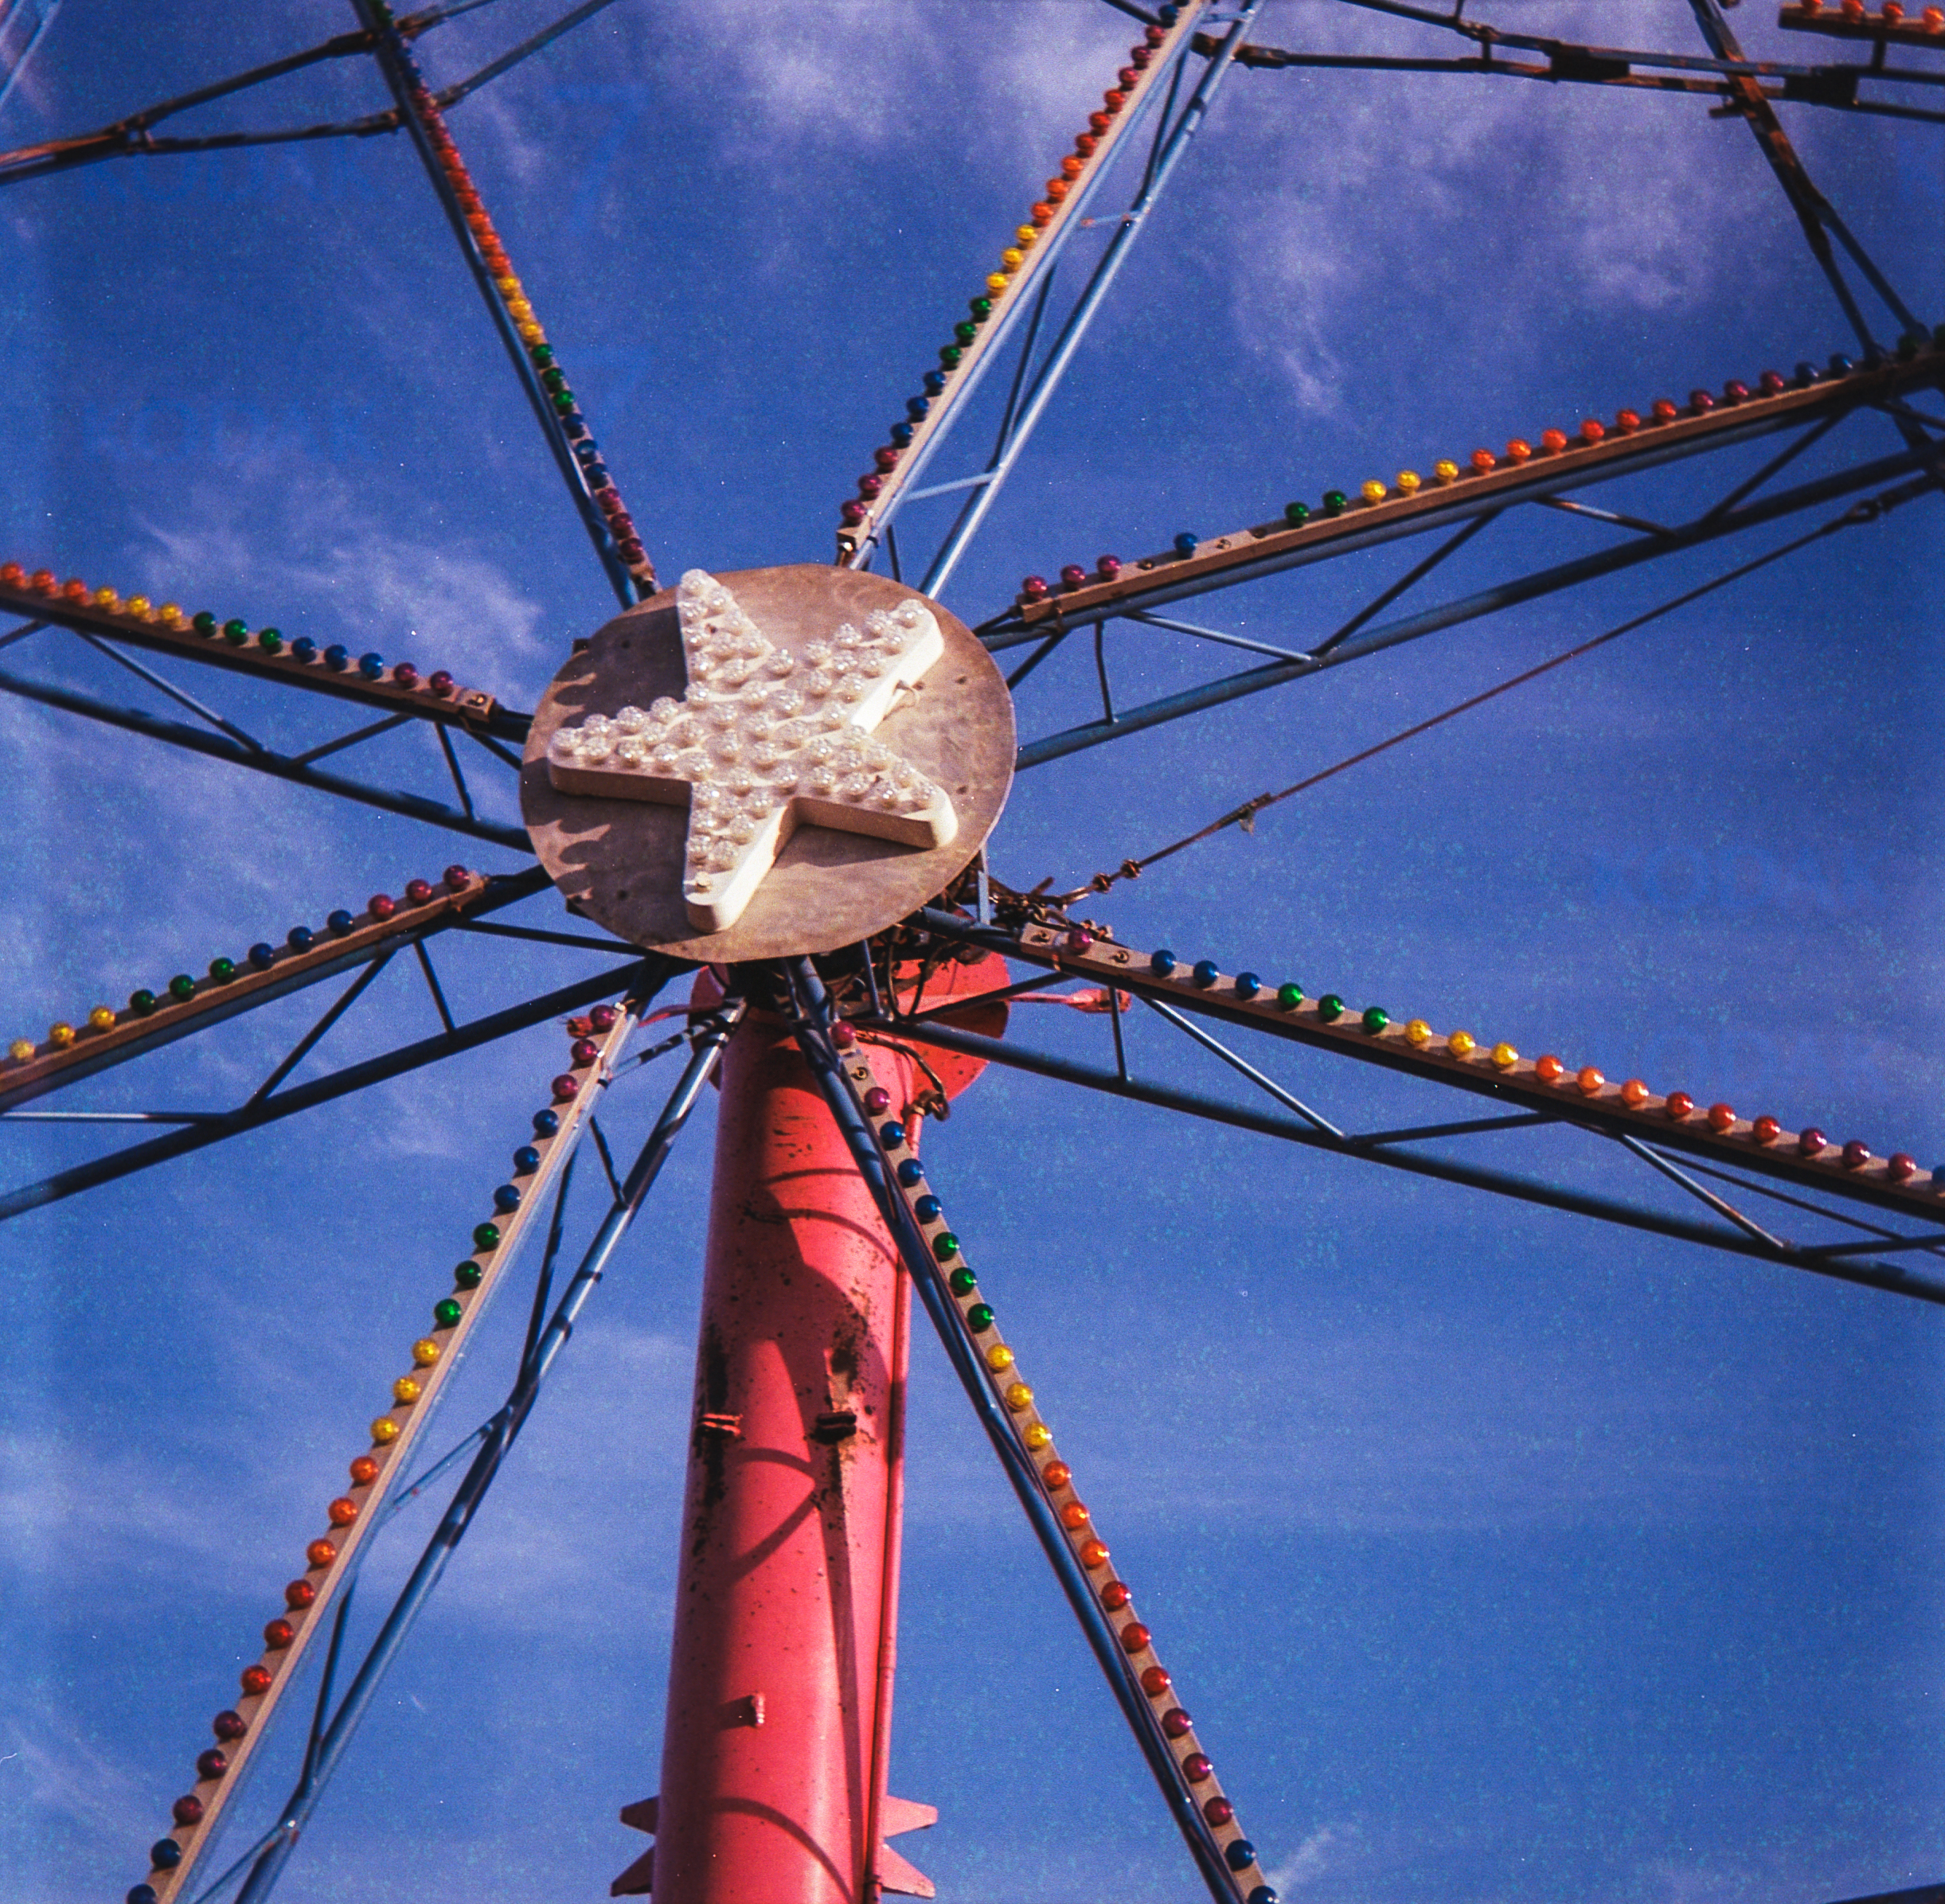 The Bright Colors of the Fair with Kodak Portra 400